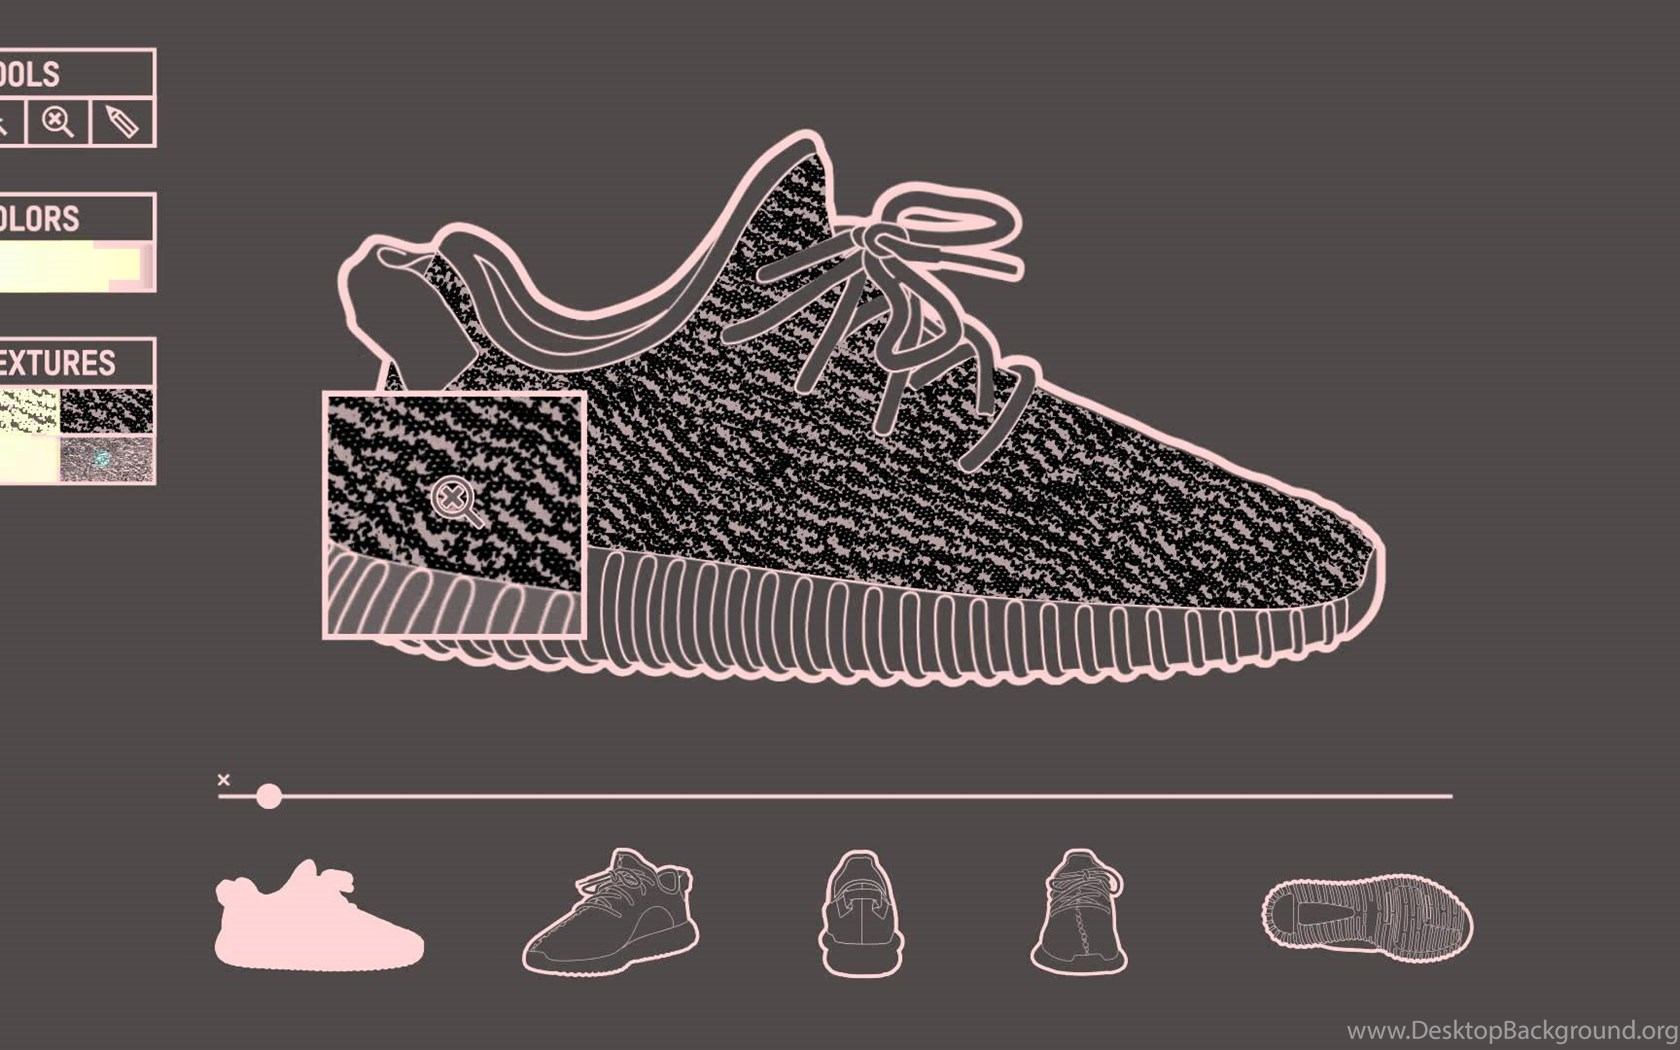 e7043aaebf140 ... official store adidas yeezy boost 350 black x kanye west youtube  desktop background 3b92a 6517d